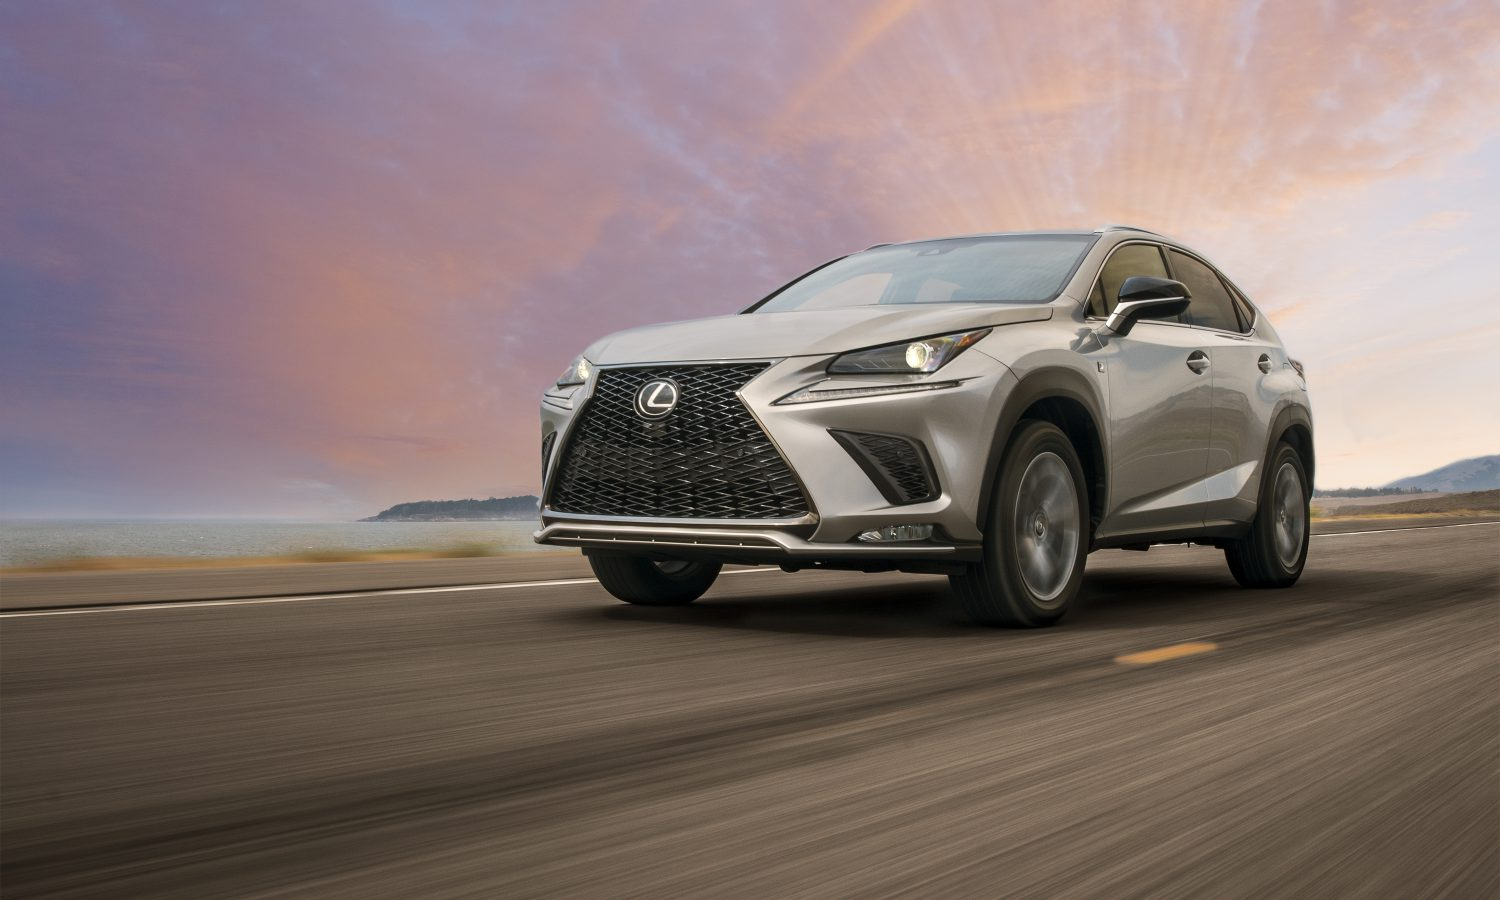 2018 Lexus NX 300: A Refresh with Added Conveniences